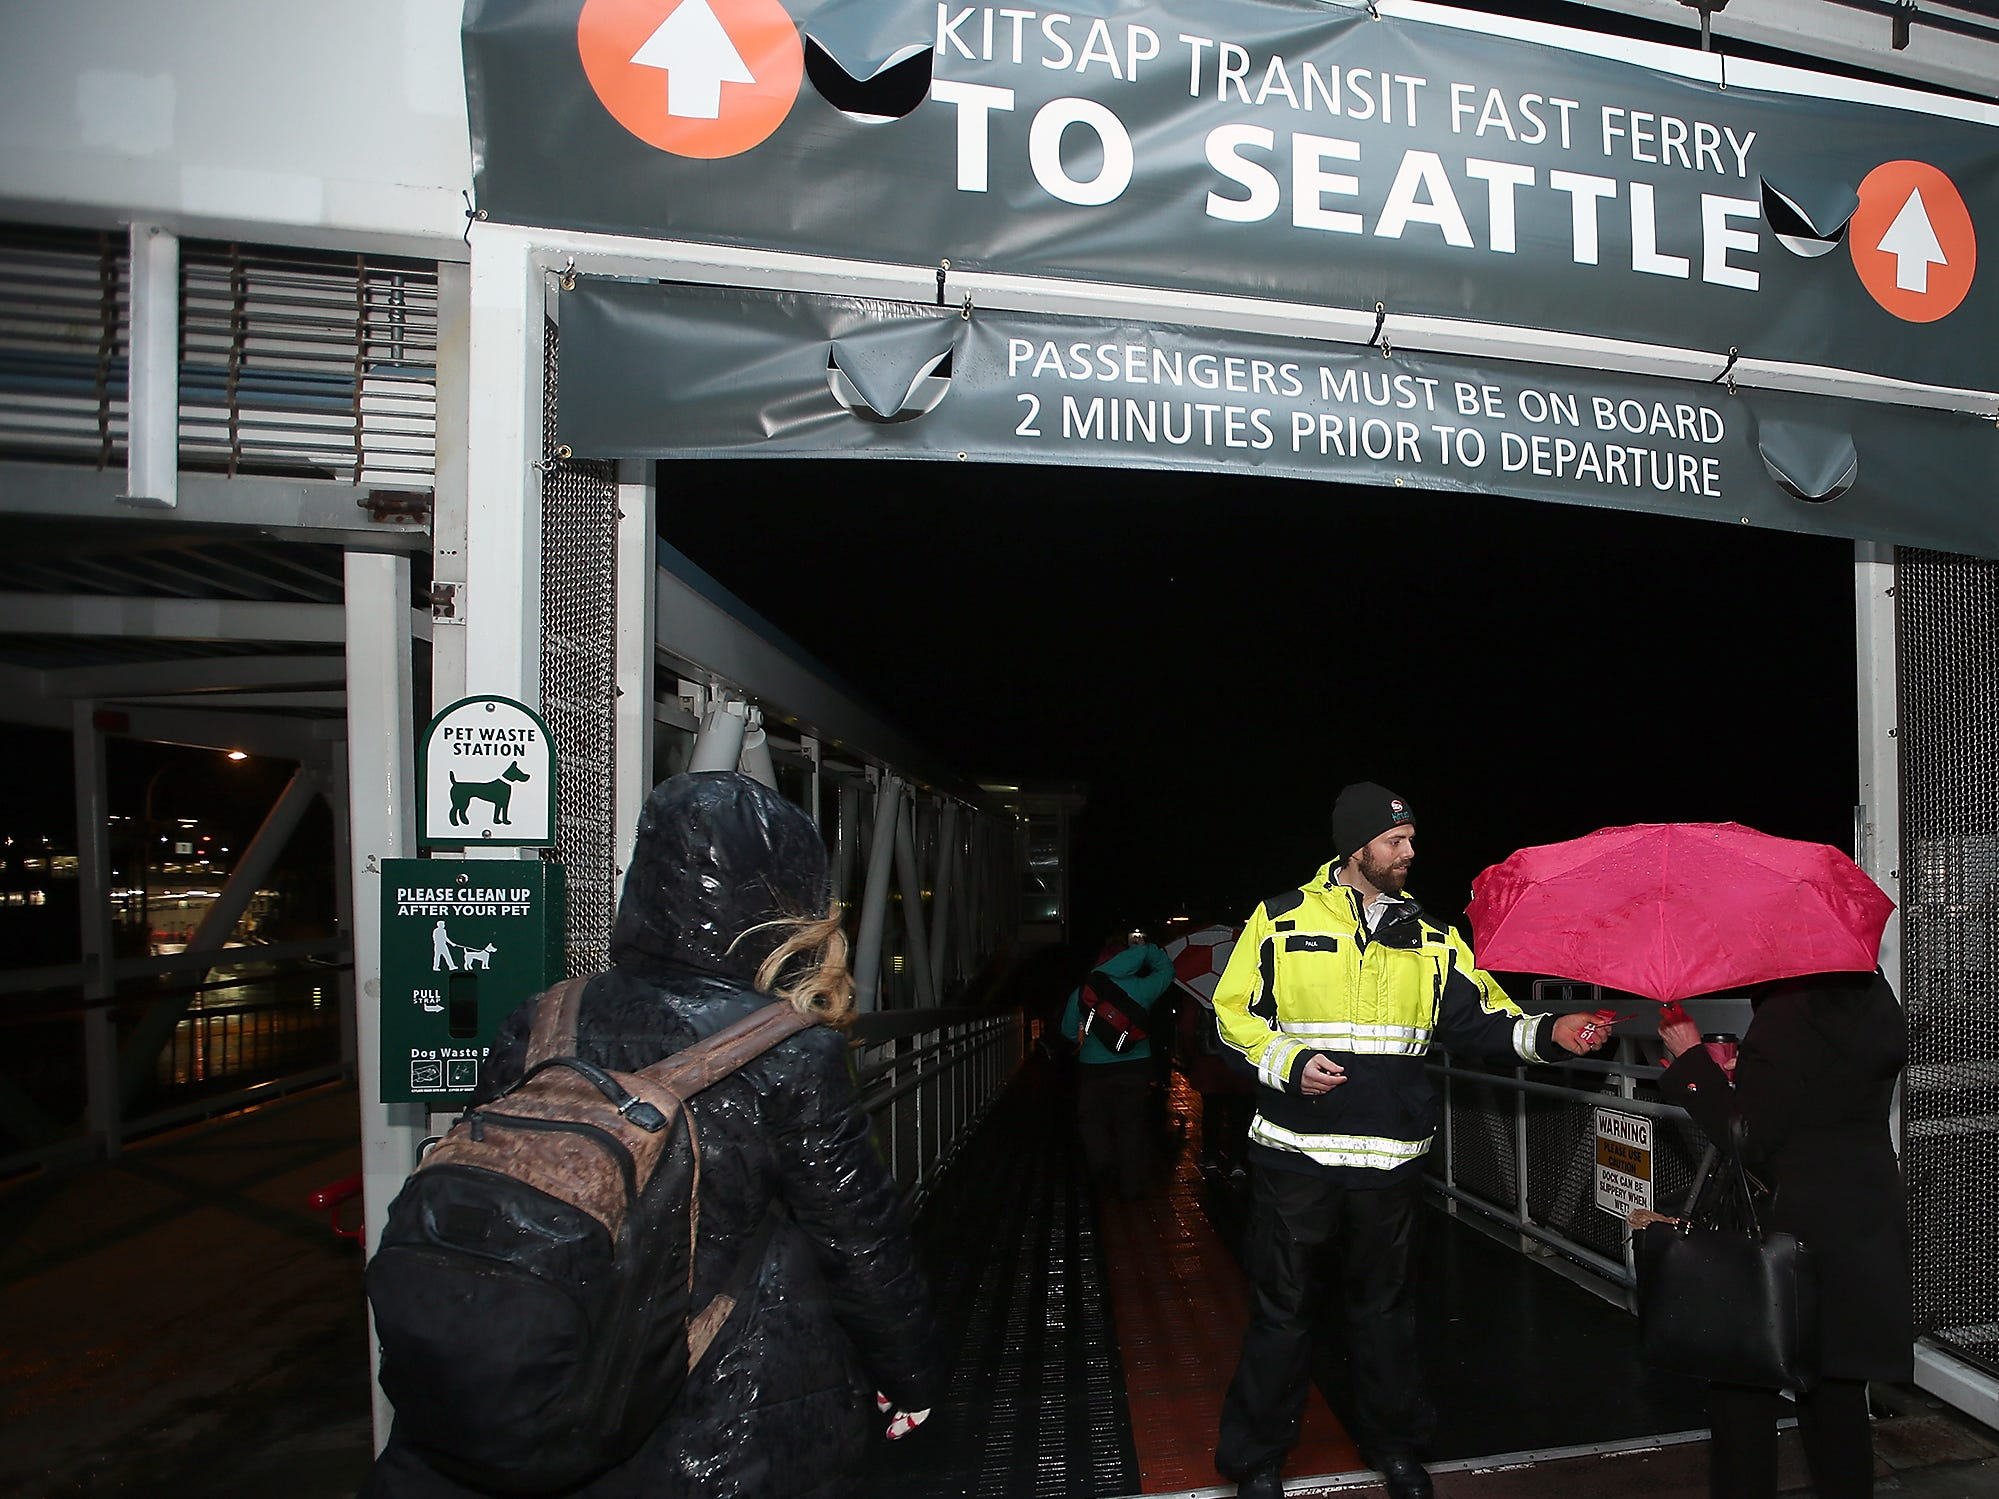 Kitsap Transit Marine Service Ambassador Paul Boudreaux  hands out boarding passes as passengers prepare to make their way down the dock to the M/V Finest for the 7:05 run to Seattle on Monday, November 26, 2018.